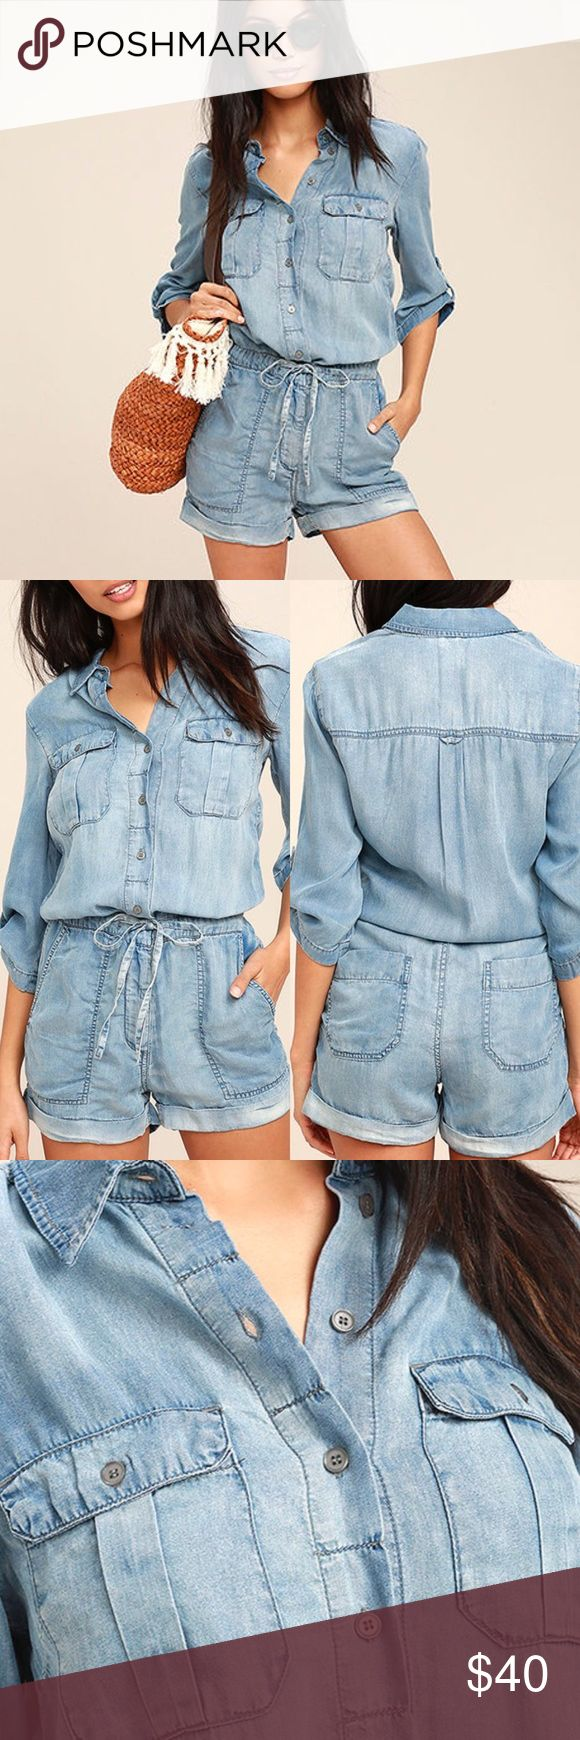 Blue Chambray Romper Live your life from one vacation to the next in the Everyday Holiday Blue Chambray Romper! Extra soft woven tencel starts at a collared neckline, and relaxed bodice with flap pockets, button-tab sleeves, and button placket. Drawstring waist tops flirty shorts with hidden zip fly, front diagonal pockets, and more patch pockets at back. Unlined. 100% Tencel. Machine Wash Cold. Imported. Pistola Jeans